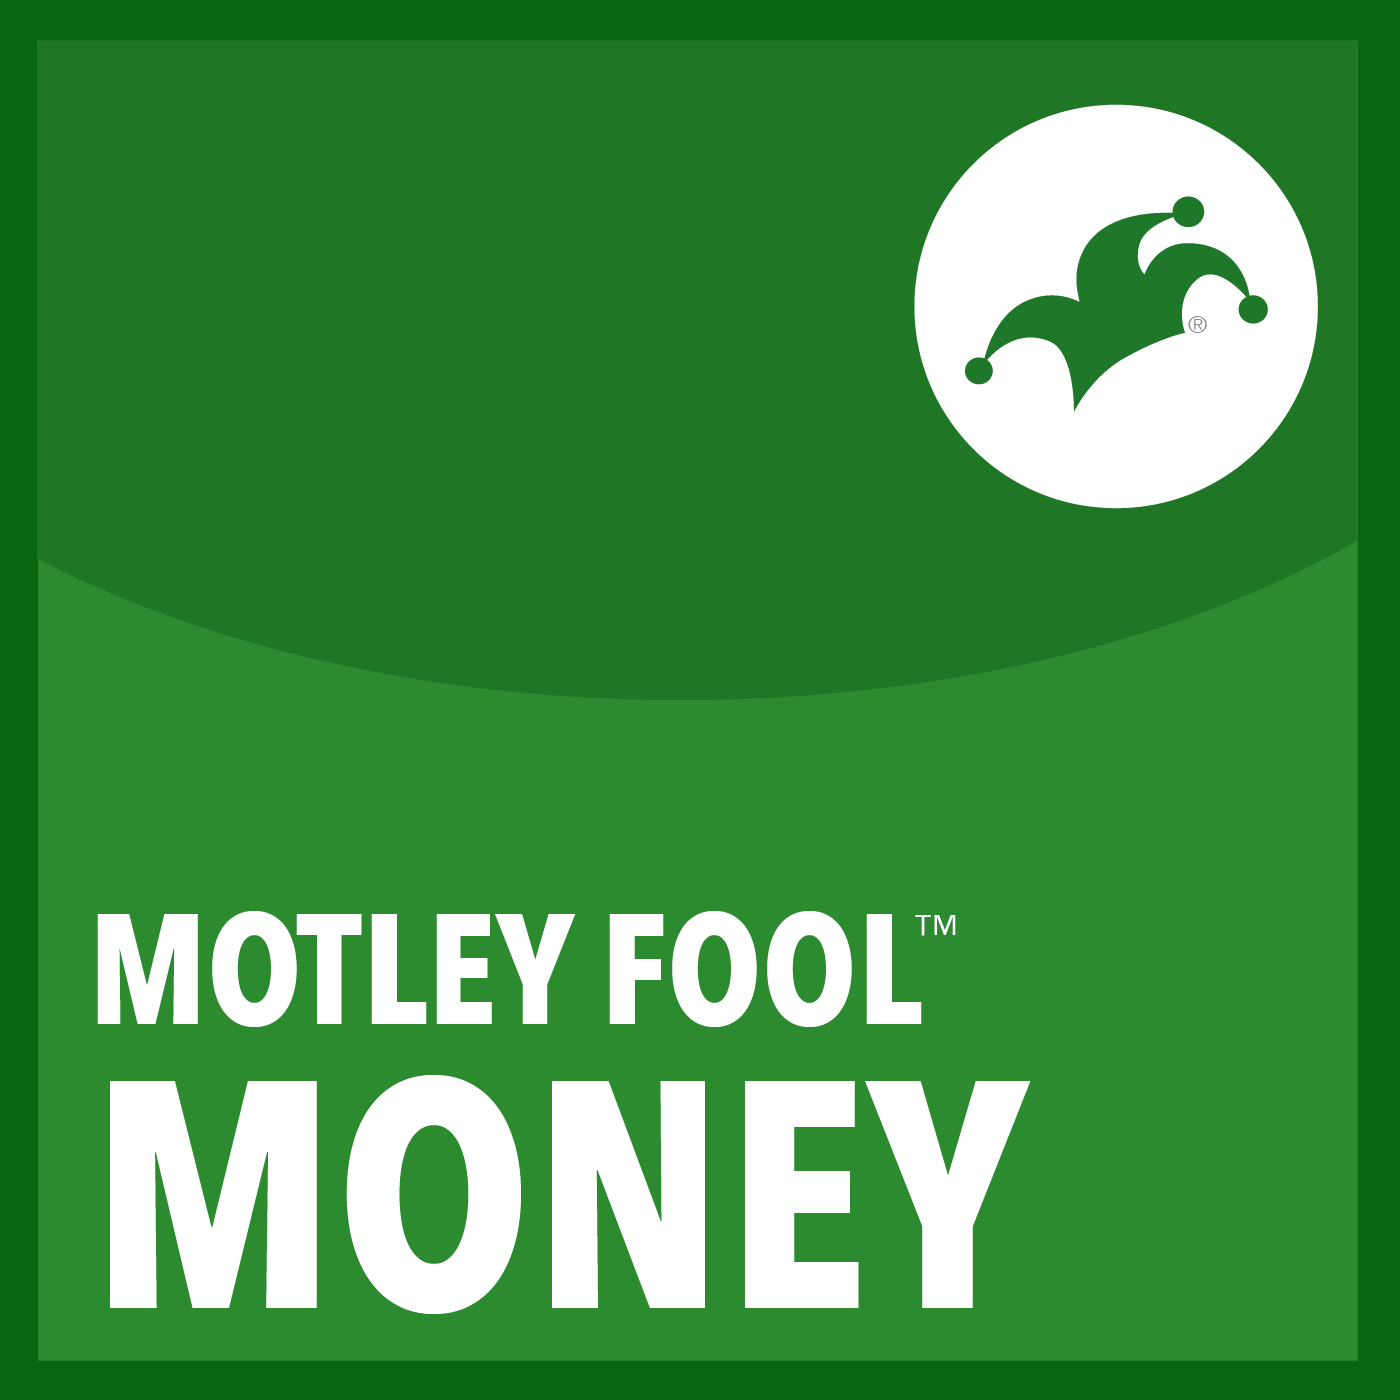 The Motley Fool Turns 25 Logo